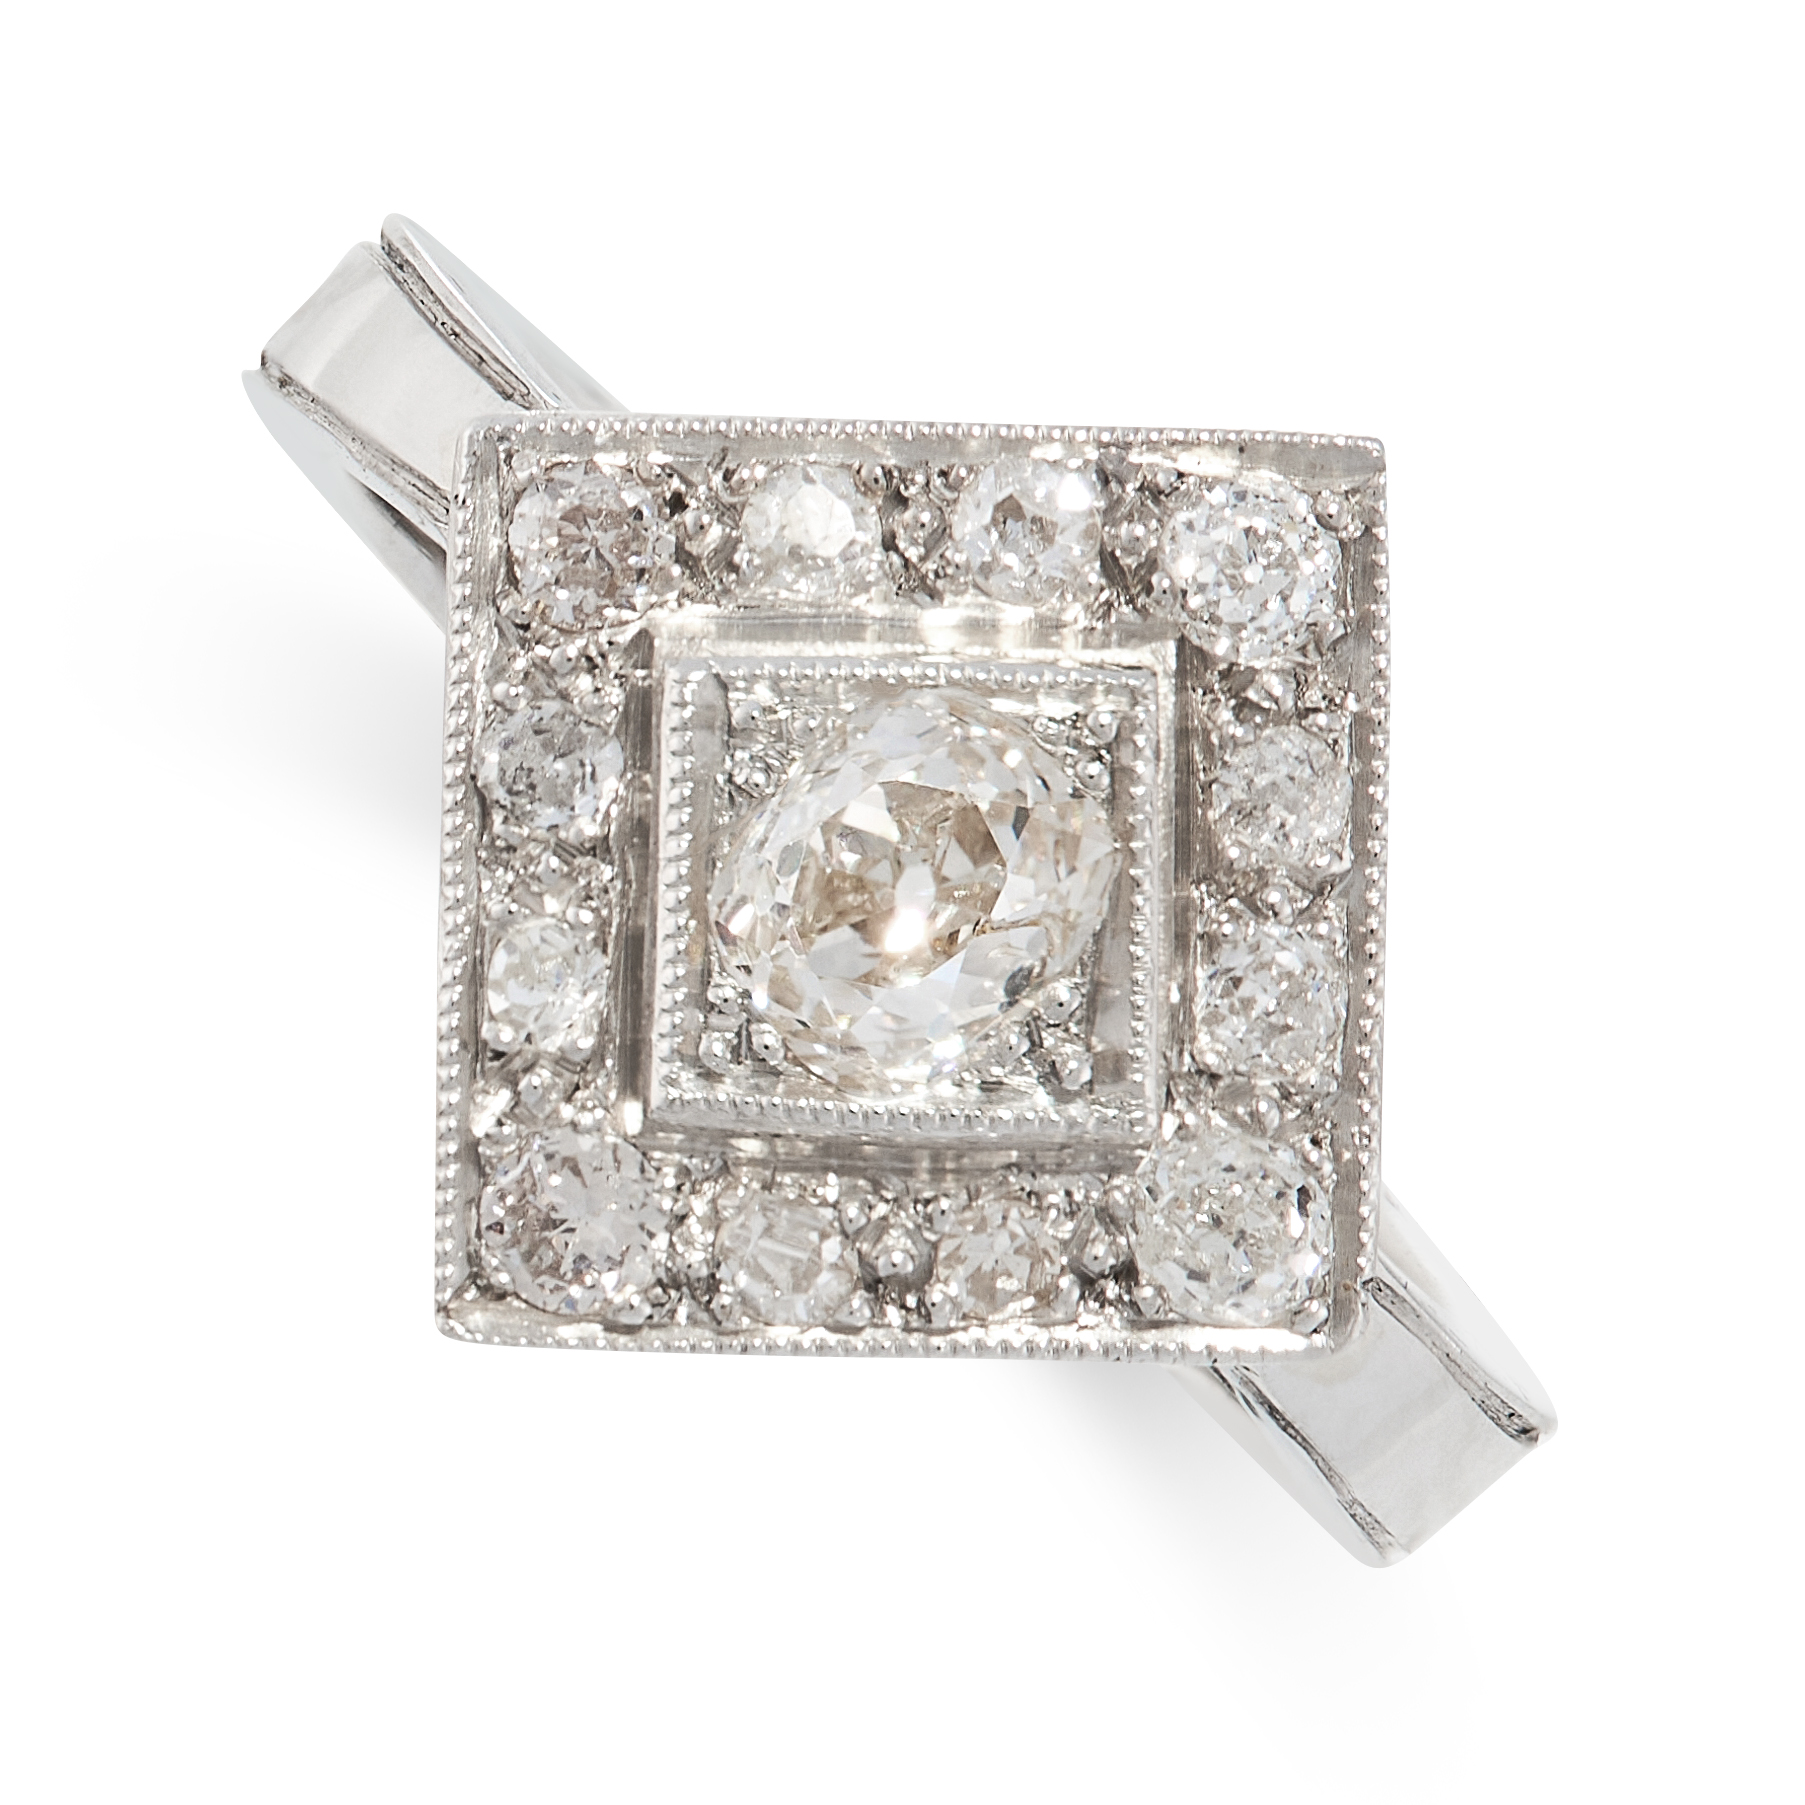 A DIAMOND DRESS RING the square face set with a central old cut diamond of 0.56 carats, within a